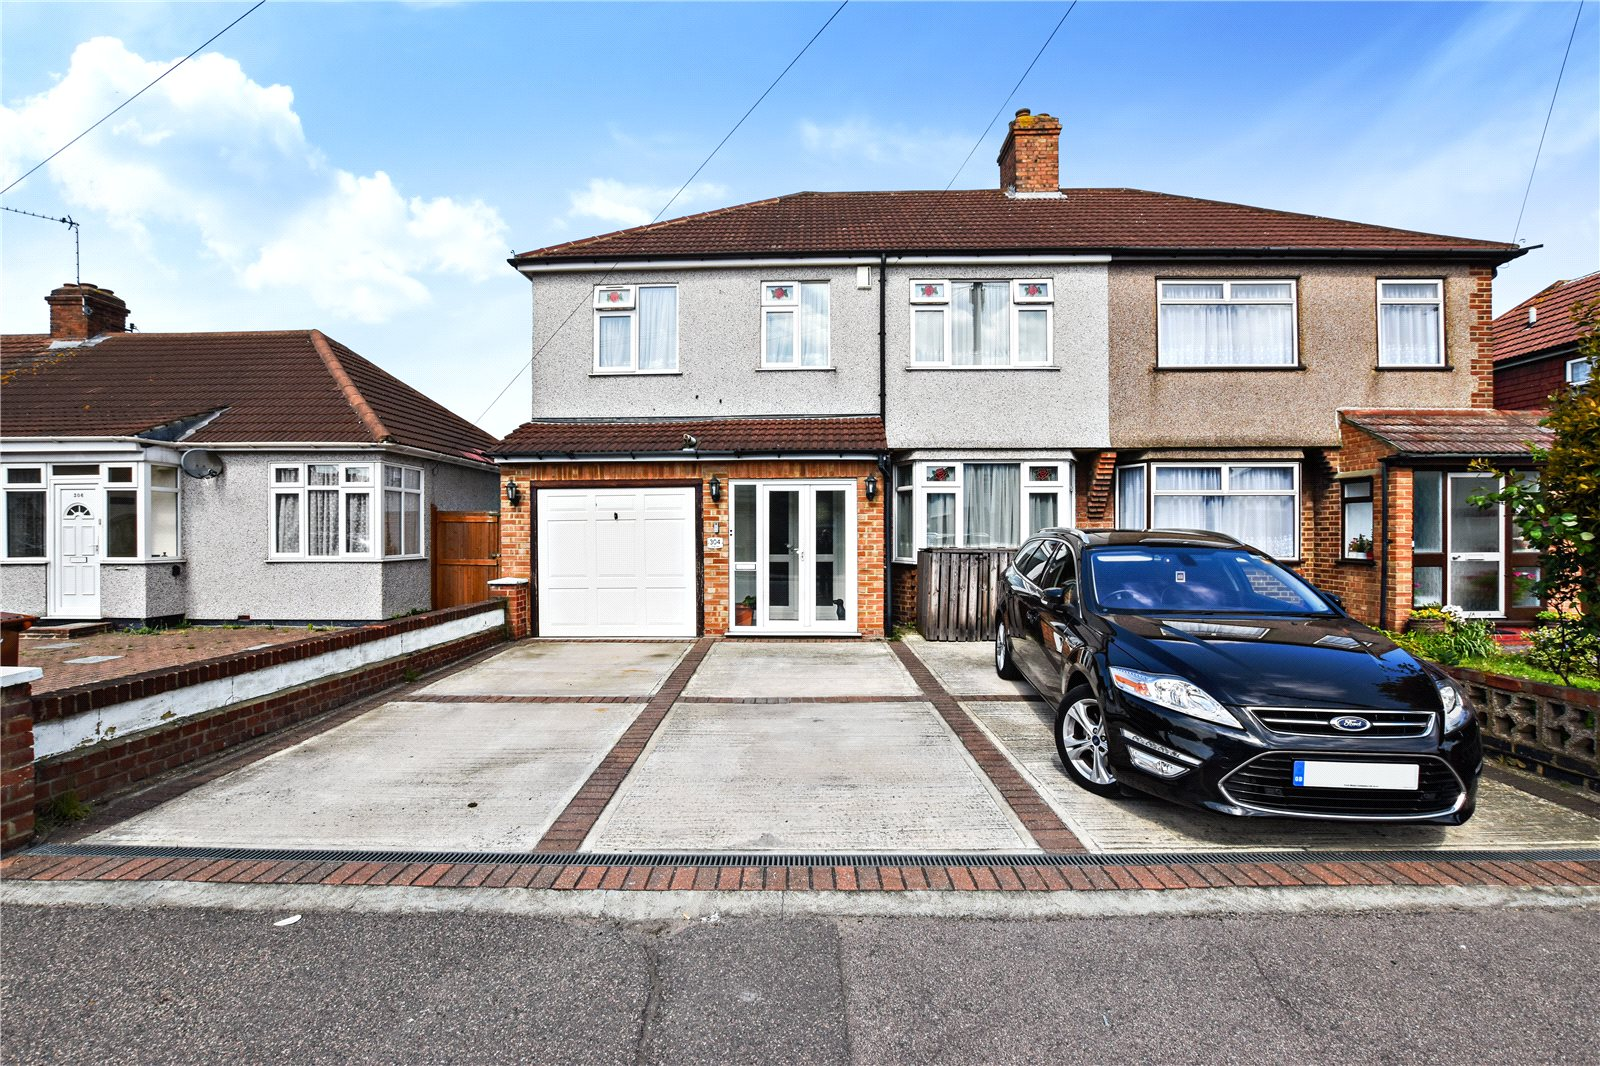 Long Lane, Bexleyheath, Kent, DA7